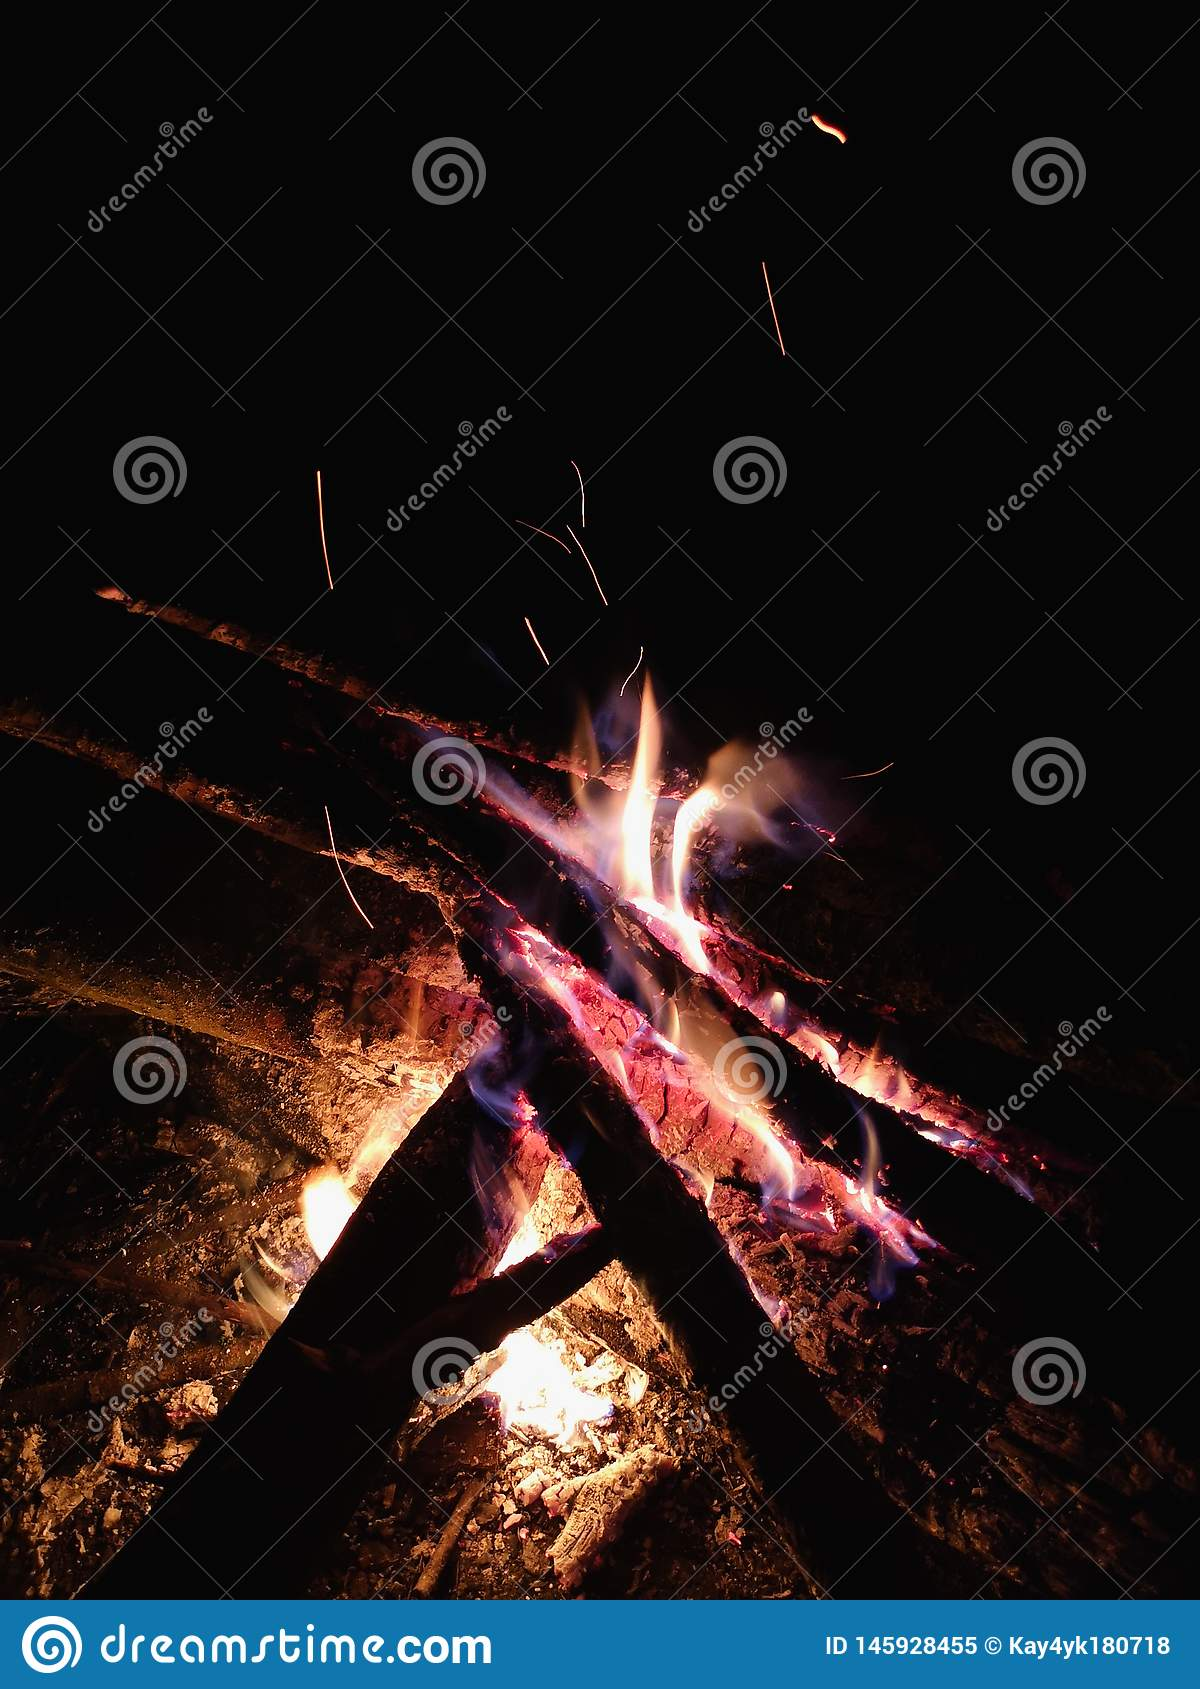 Extreme close up of fire sparks moving on dark night sky as black background coming from brightly burning warm outdoors